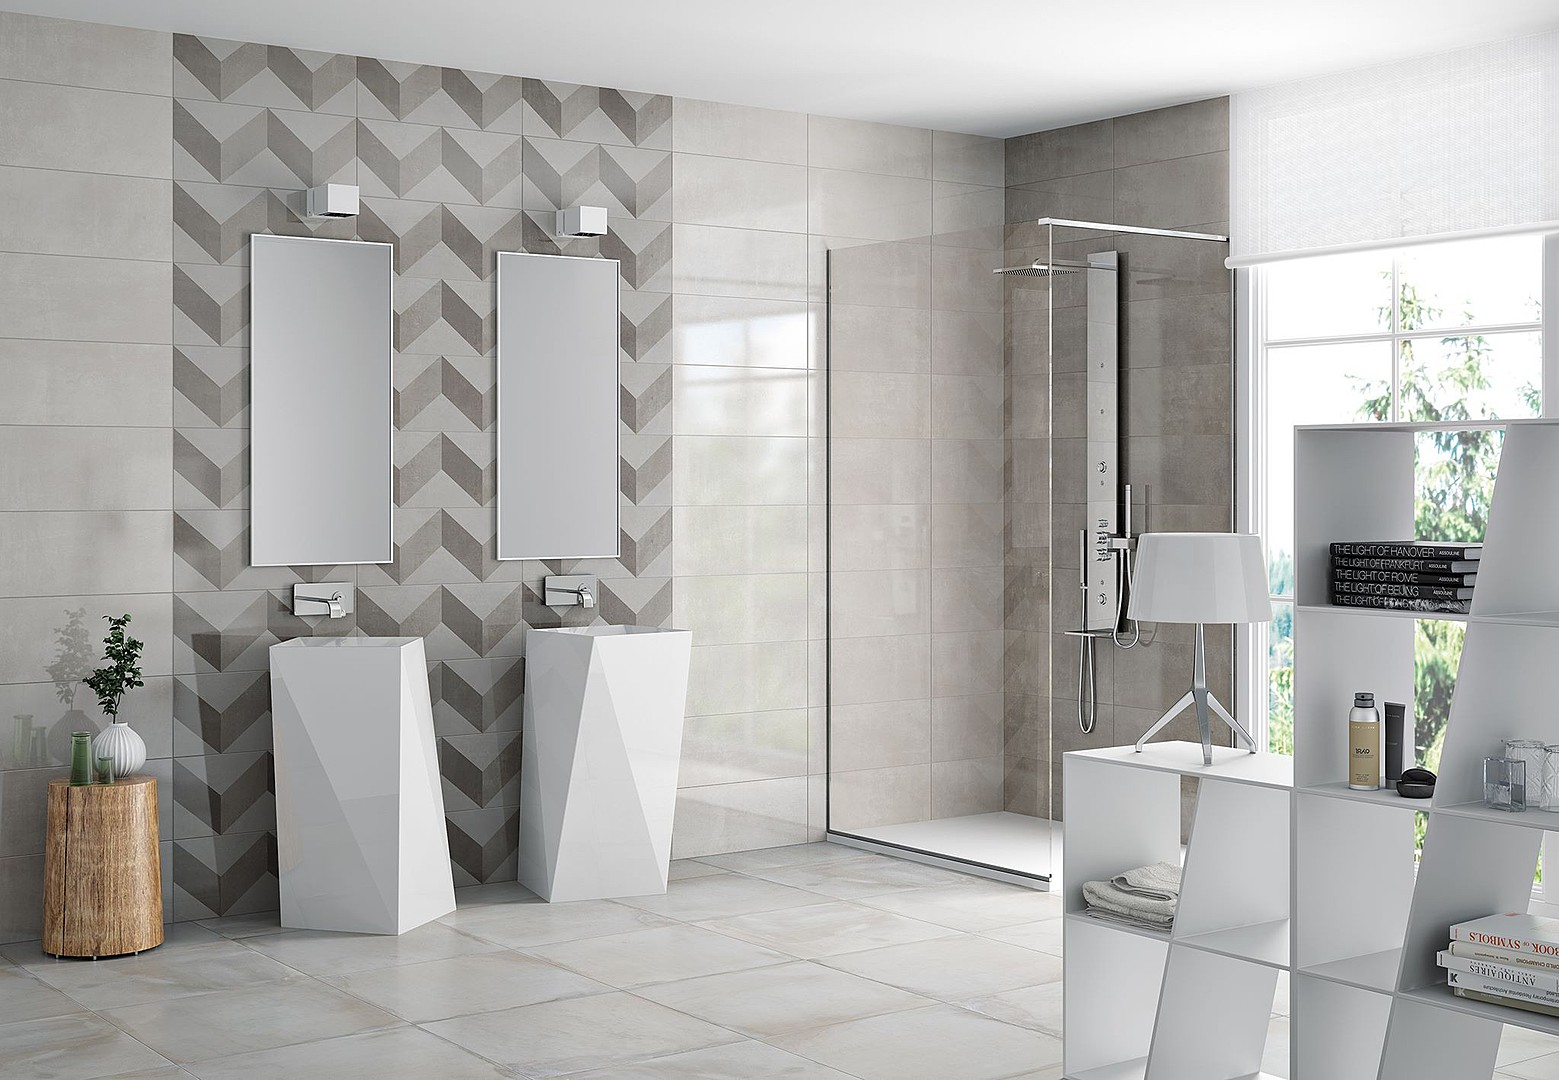 TRACE Ceramic Tiles by Cifre Ceramica